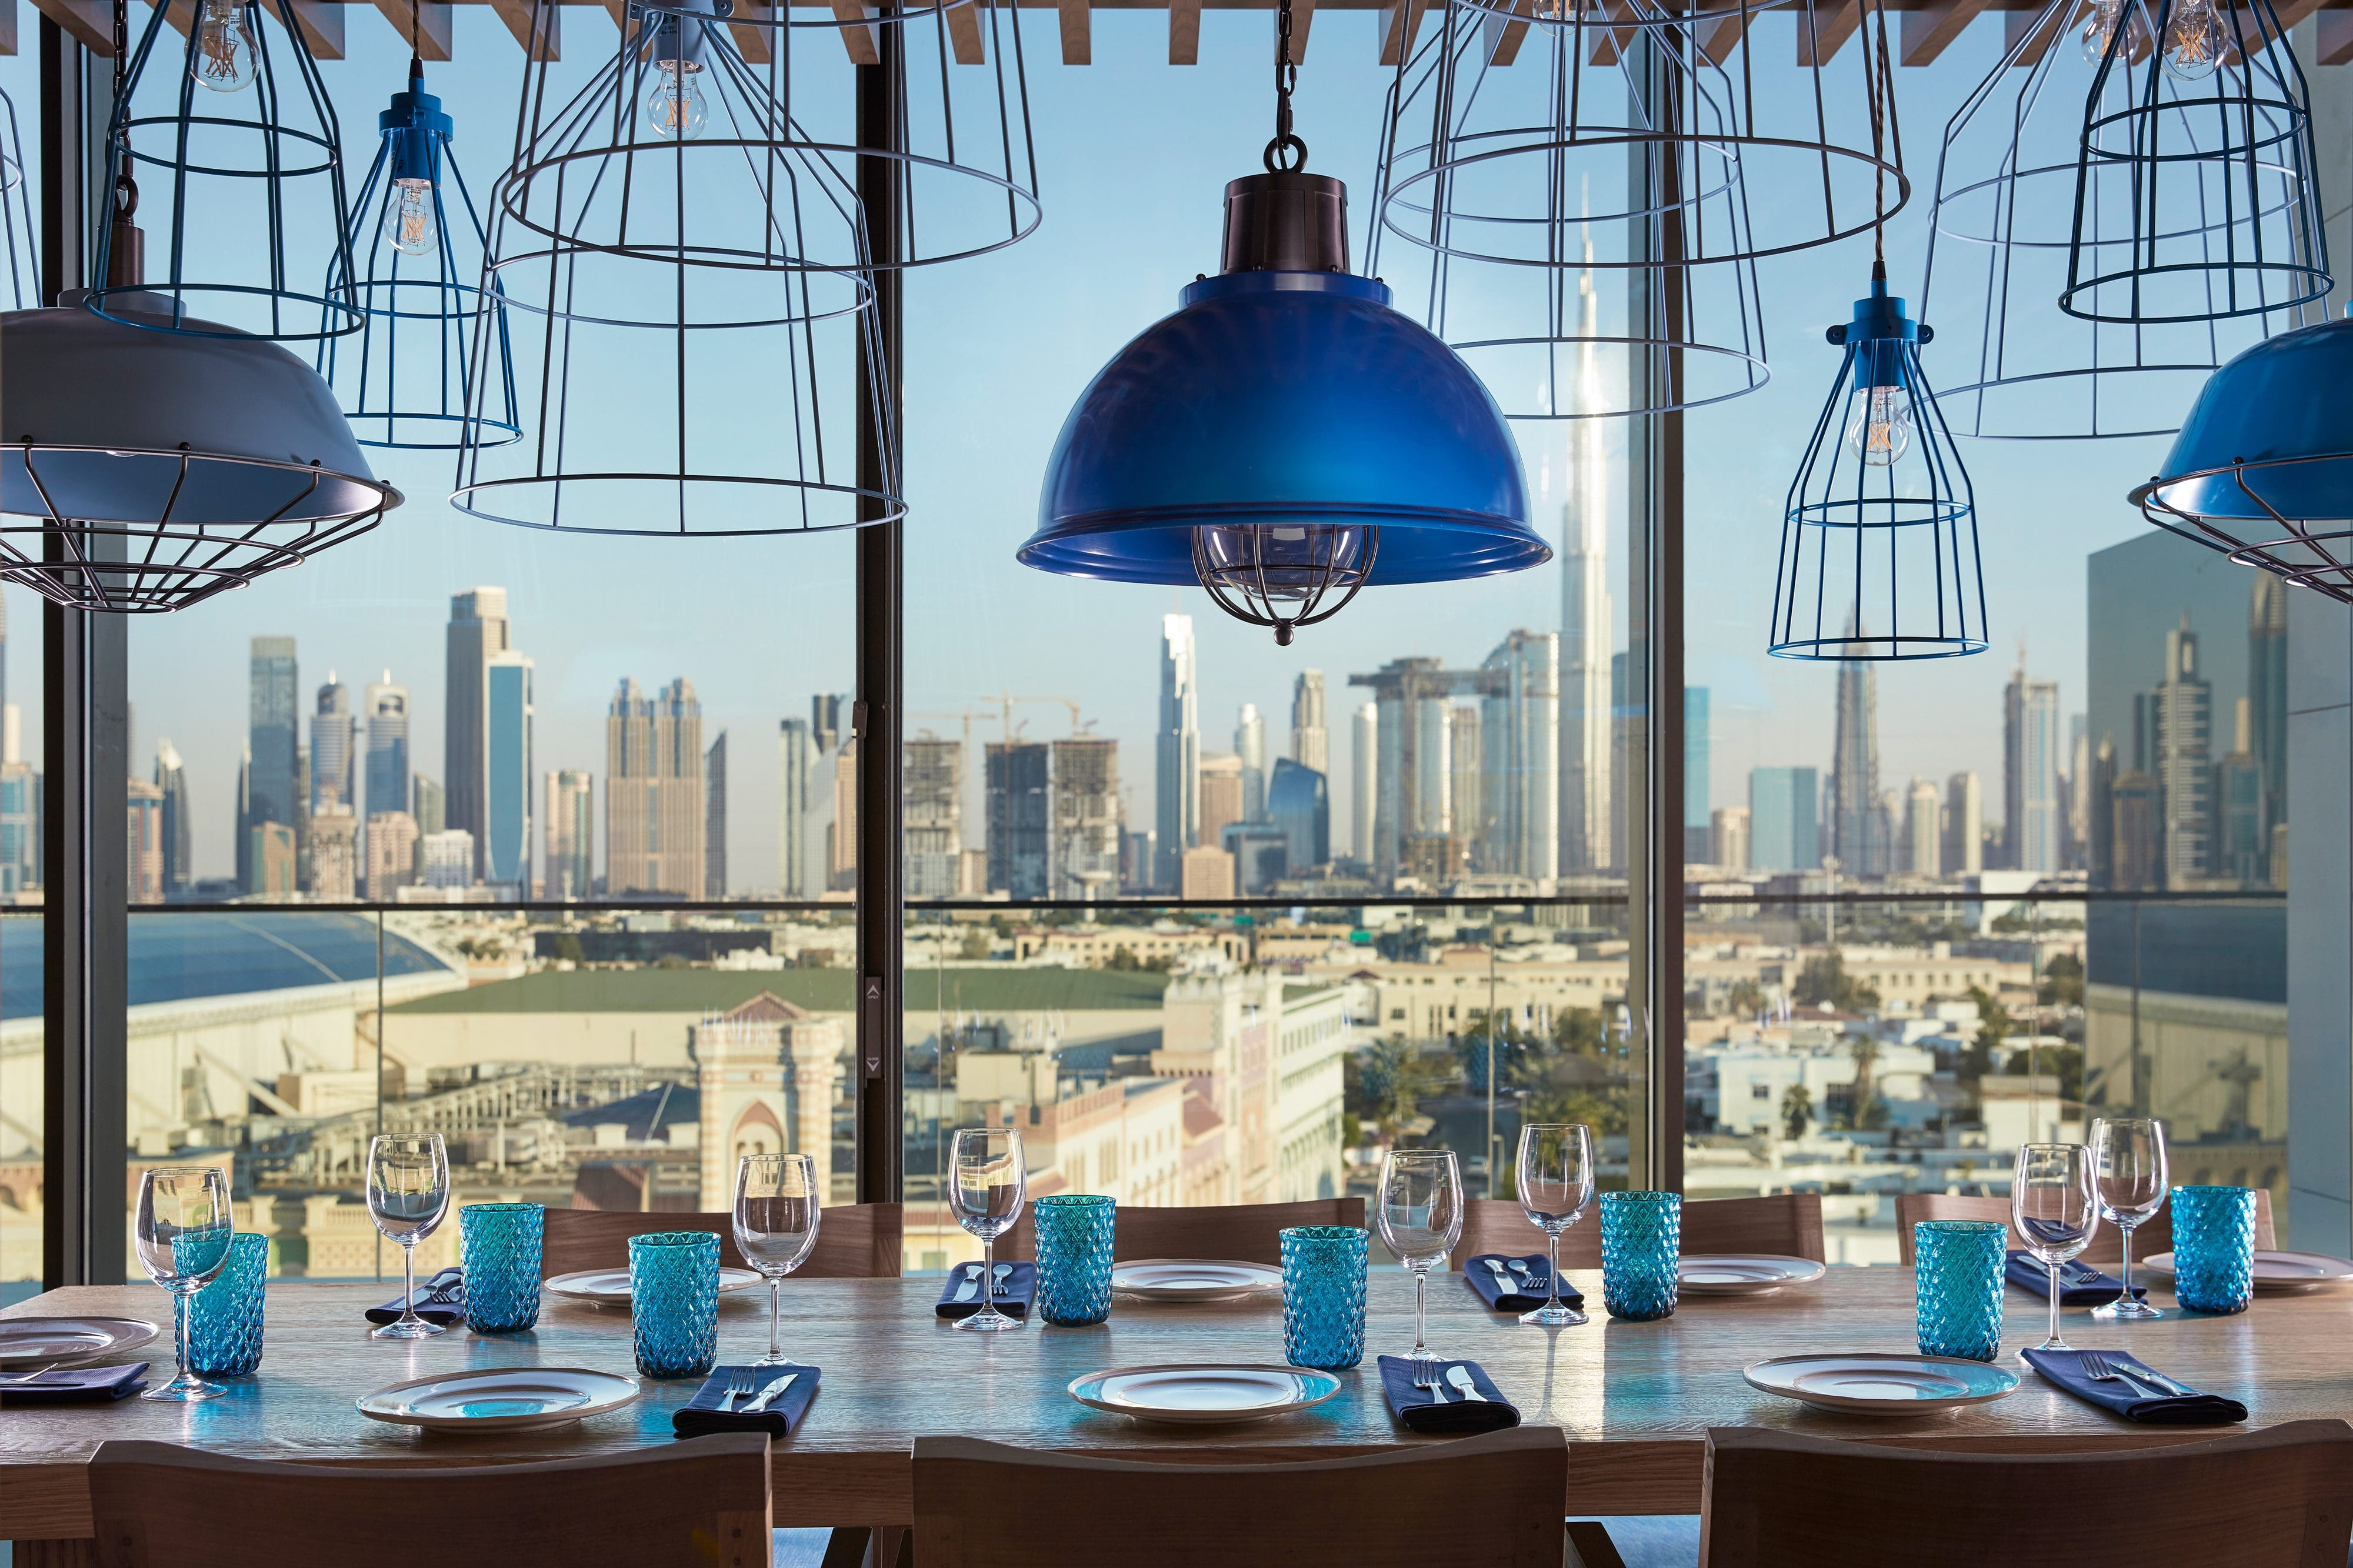 View from the city-view tables at Tasca restaurant at Mandarin Oriental Jumeira, Dubai with its blue handing lights and blue water glasses